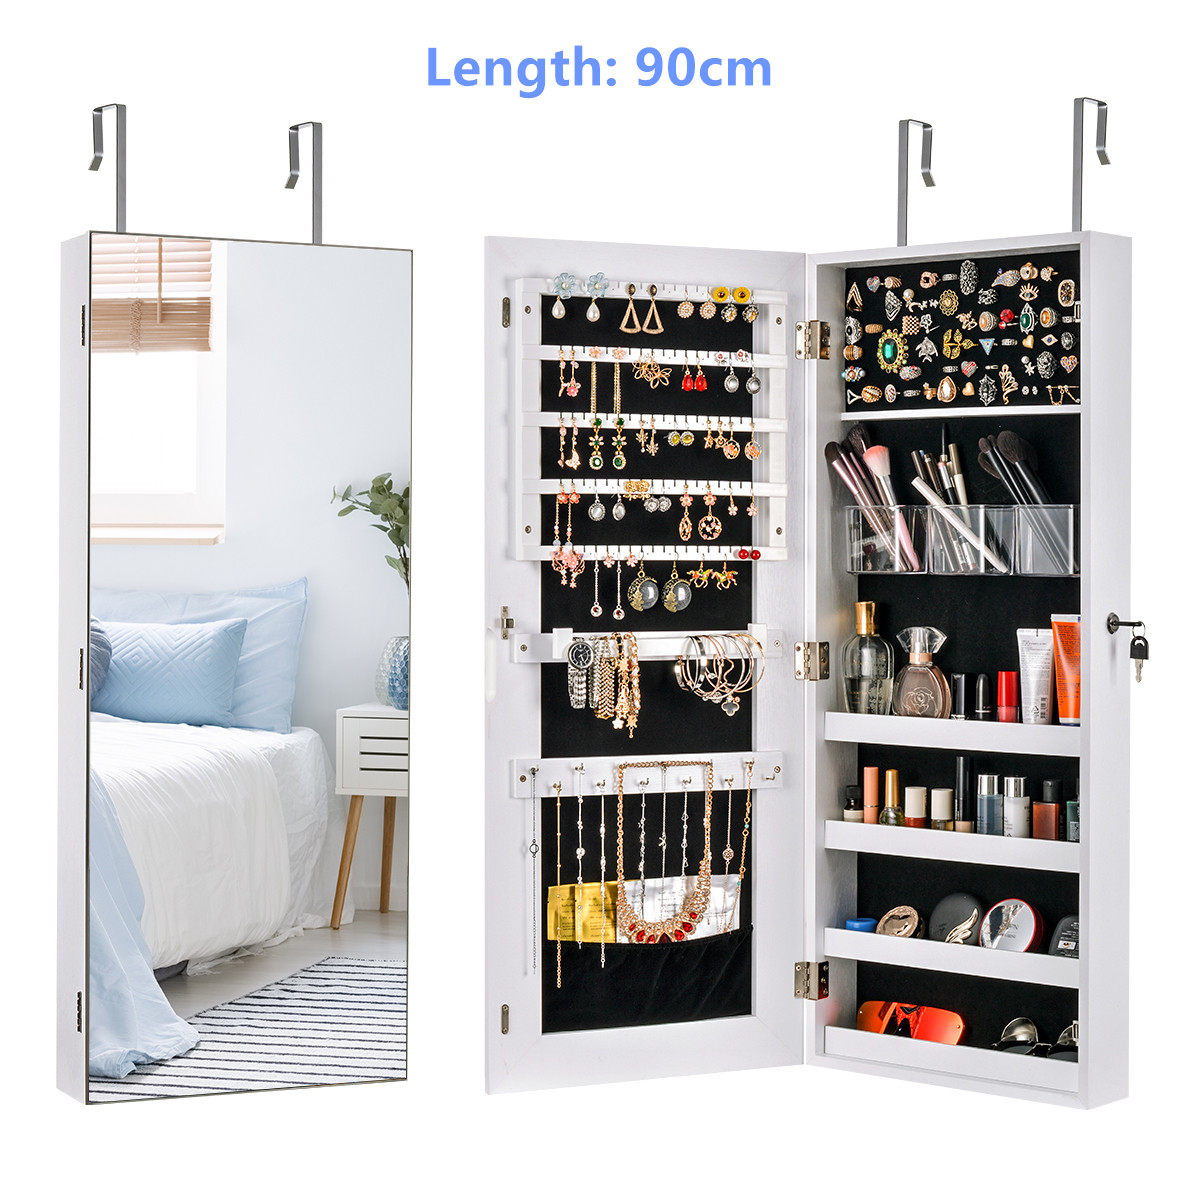 Multifunctional LED Jewelry Mirror Cabinet Wall Door Mounted Jewelry Cabinet Lockable Armoire Organizer Dresser Mirror with LED 12